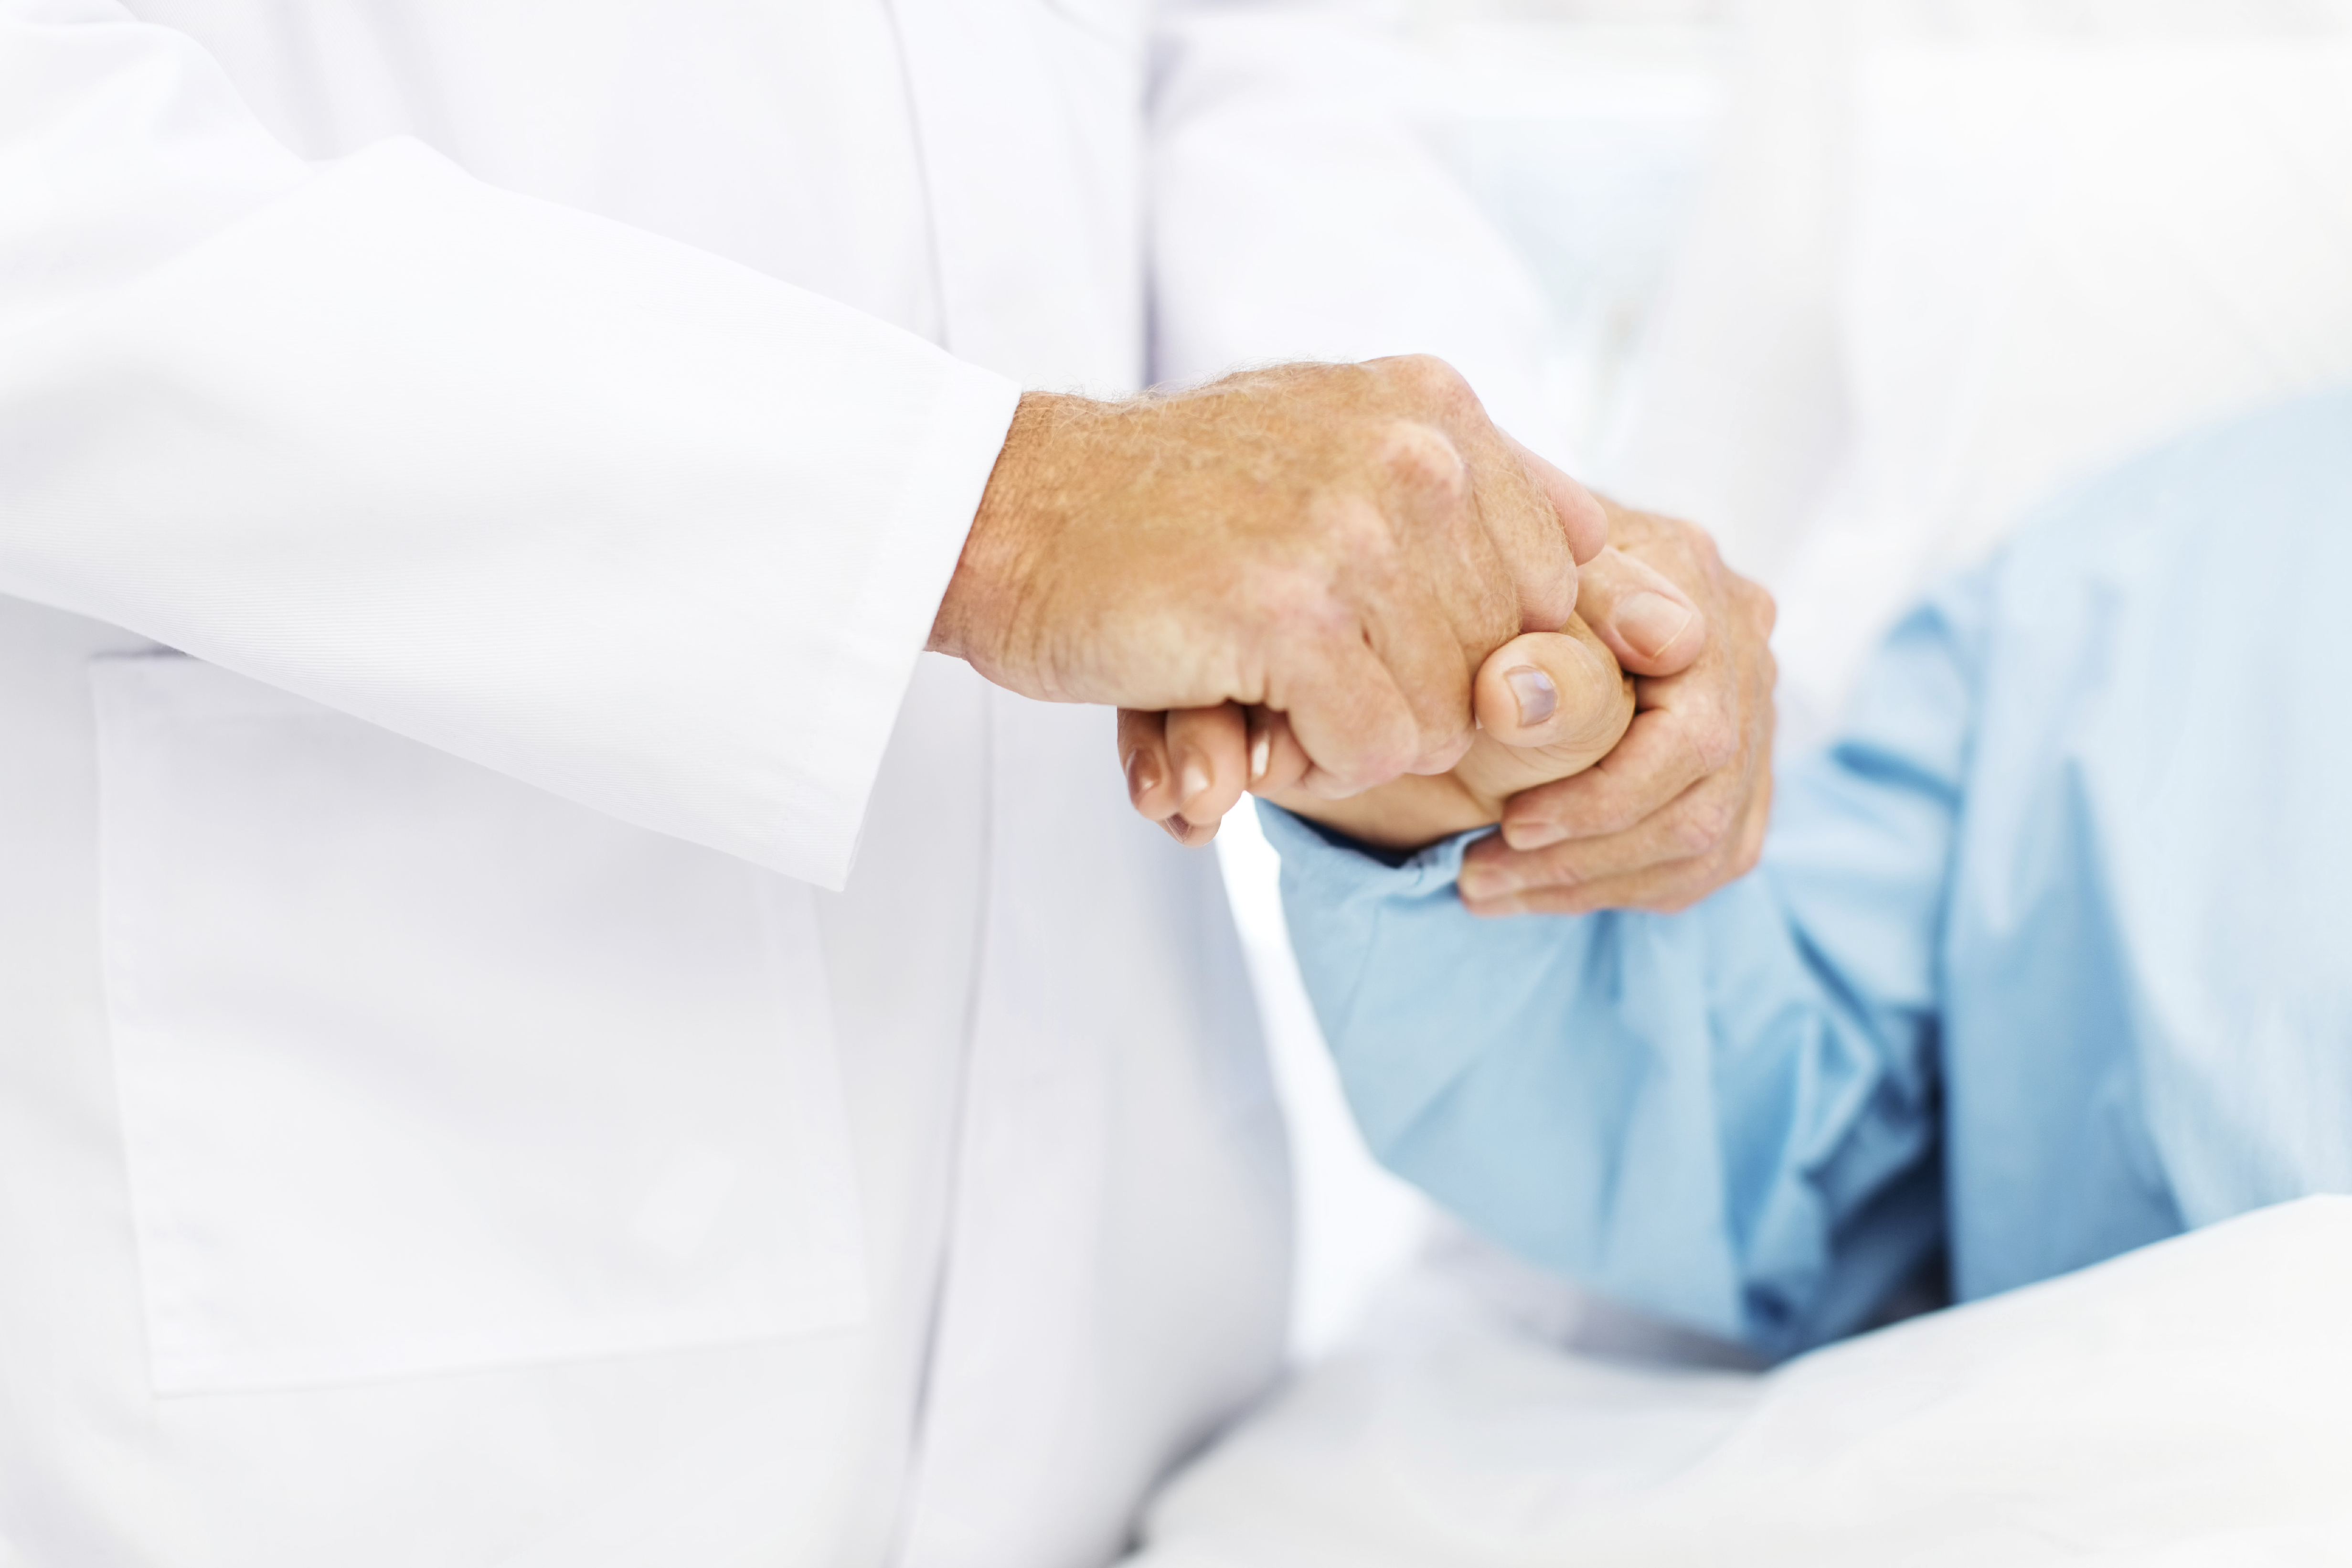 empathy research paper Empathy and quality of care  empathy is a complex multi-dimensional concept that has moral  research on the effect of empathy on health outcomes in.